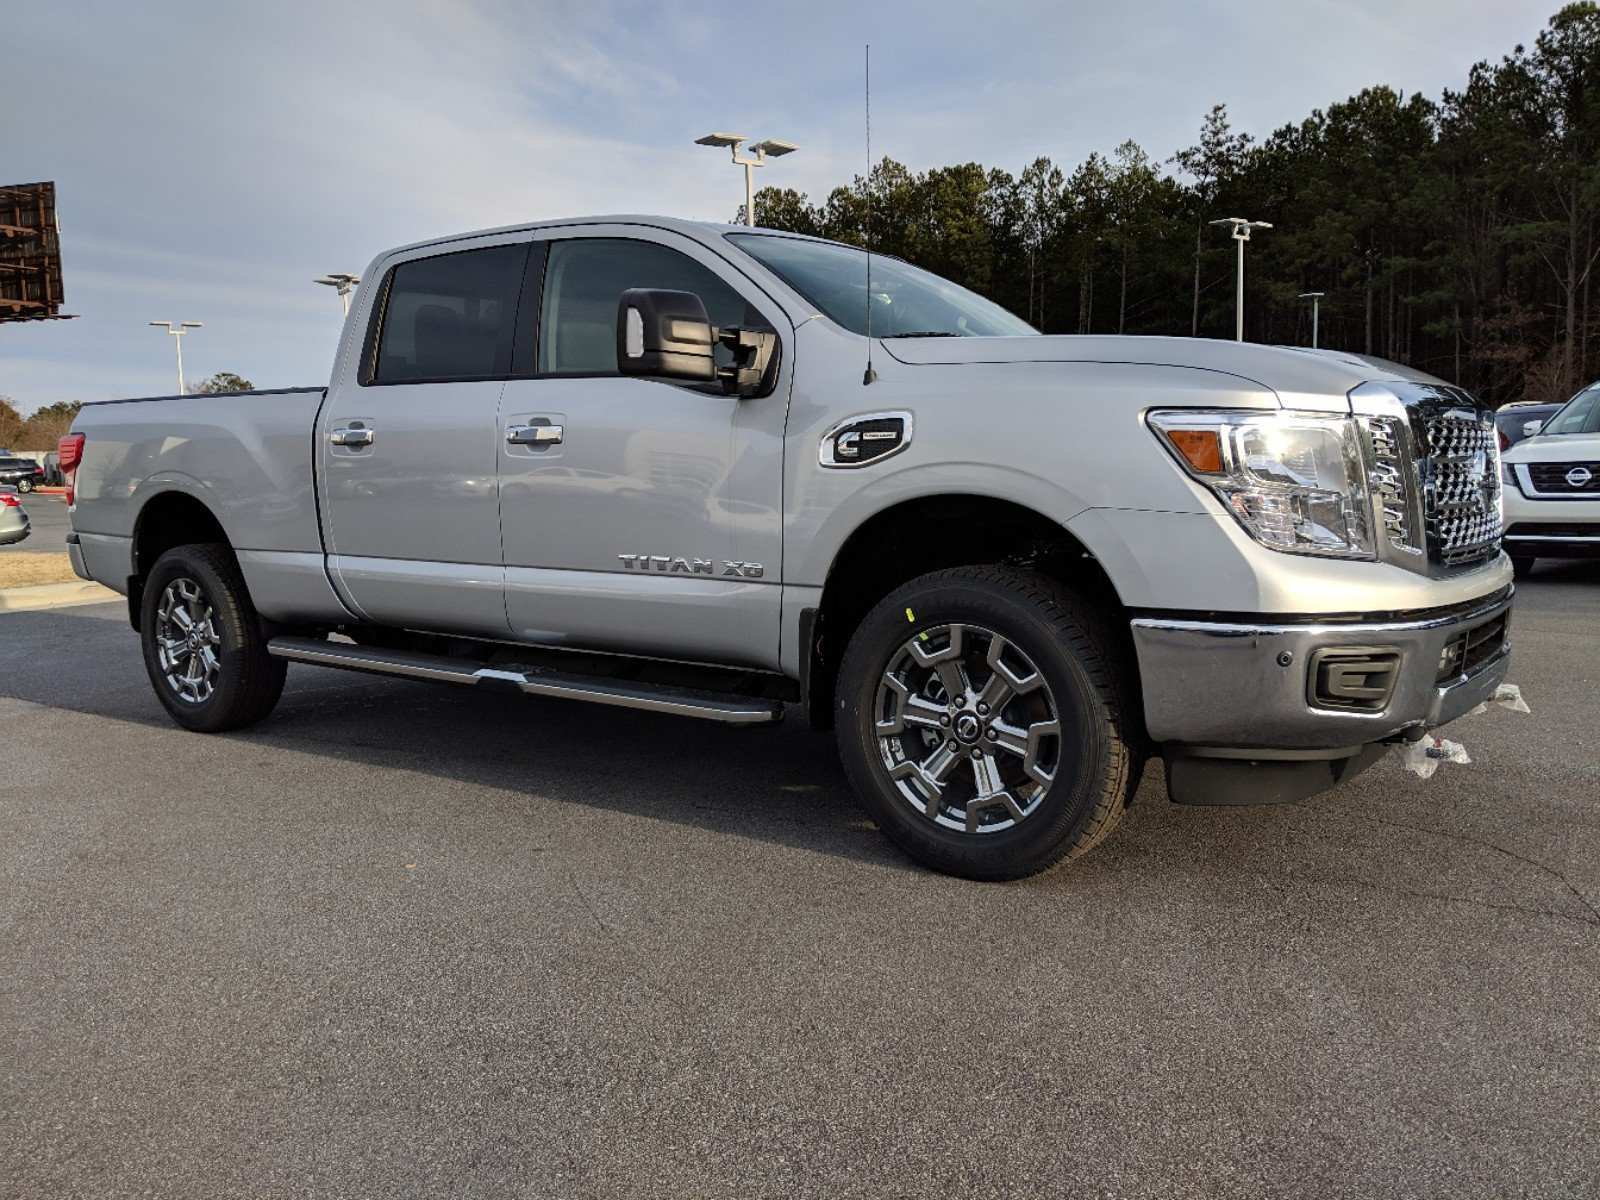 53 The Best 2019 Nissan Titan Xd Price And Review